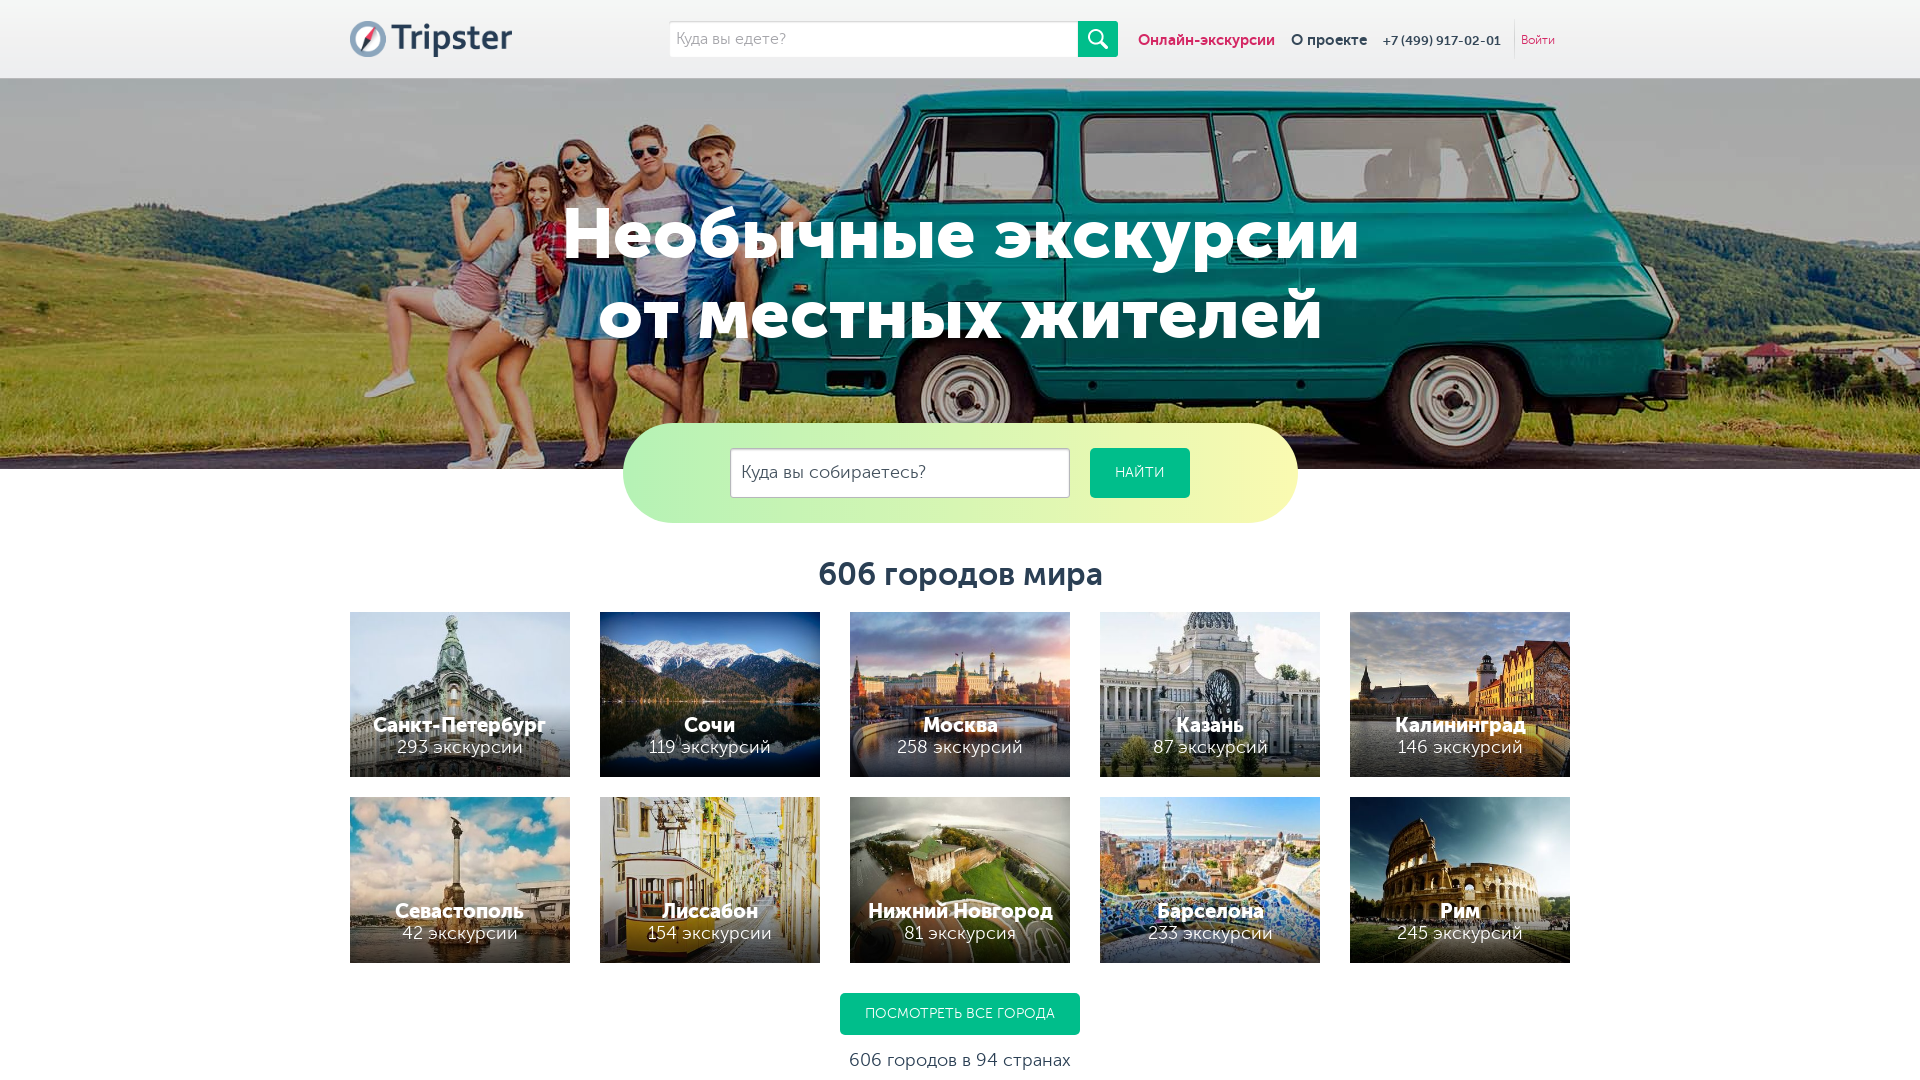 Tripster website